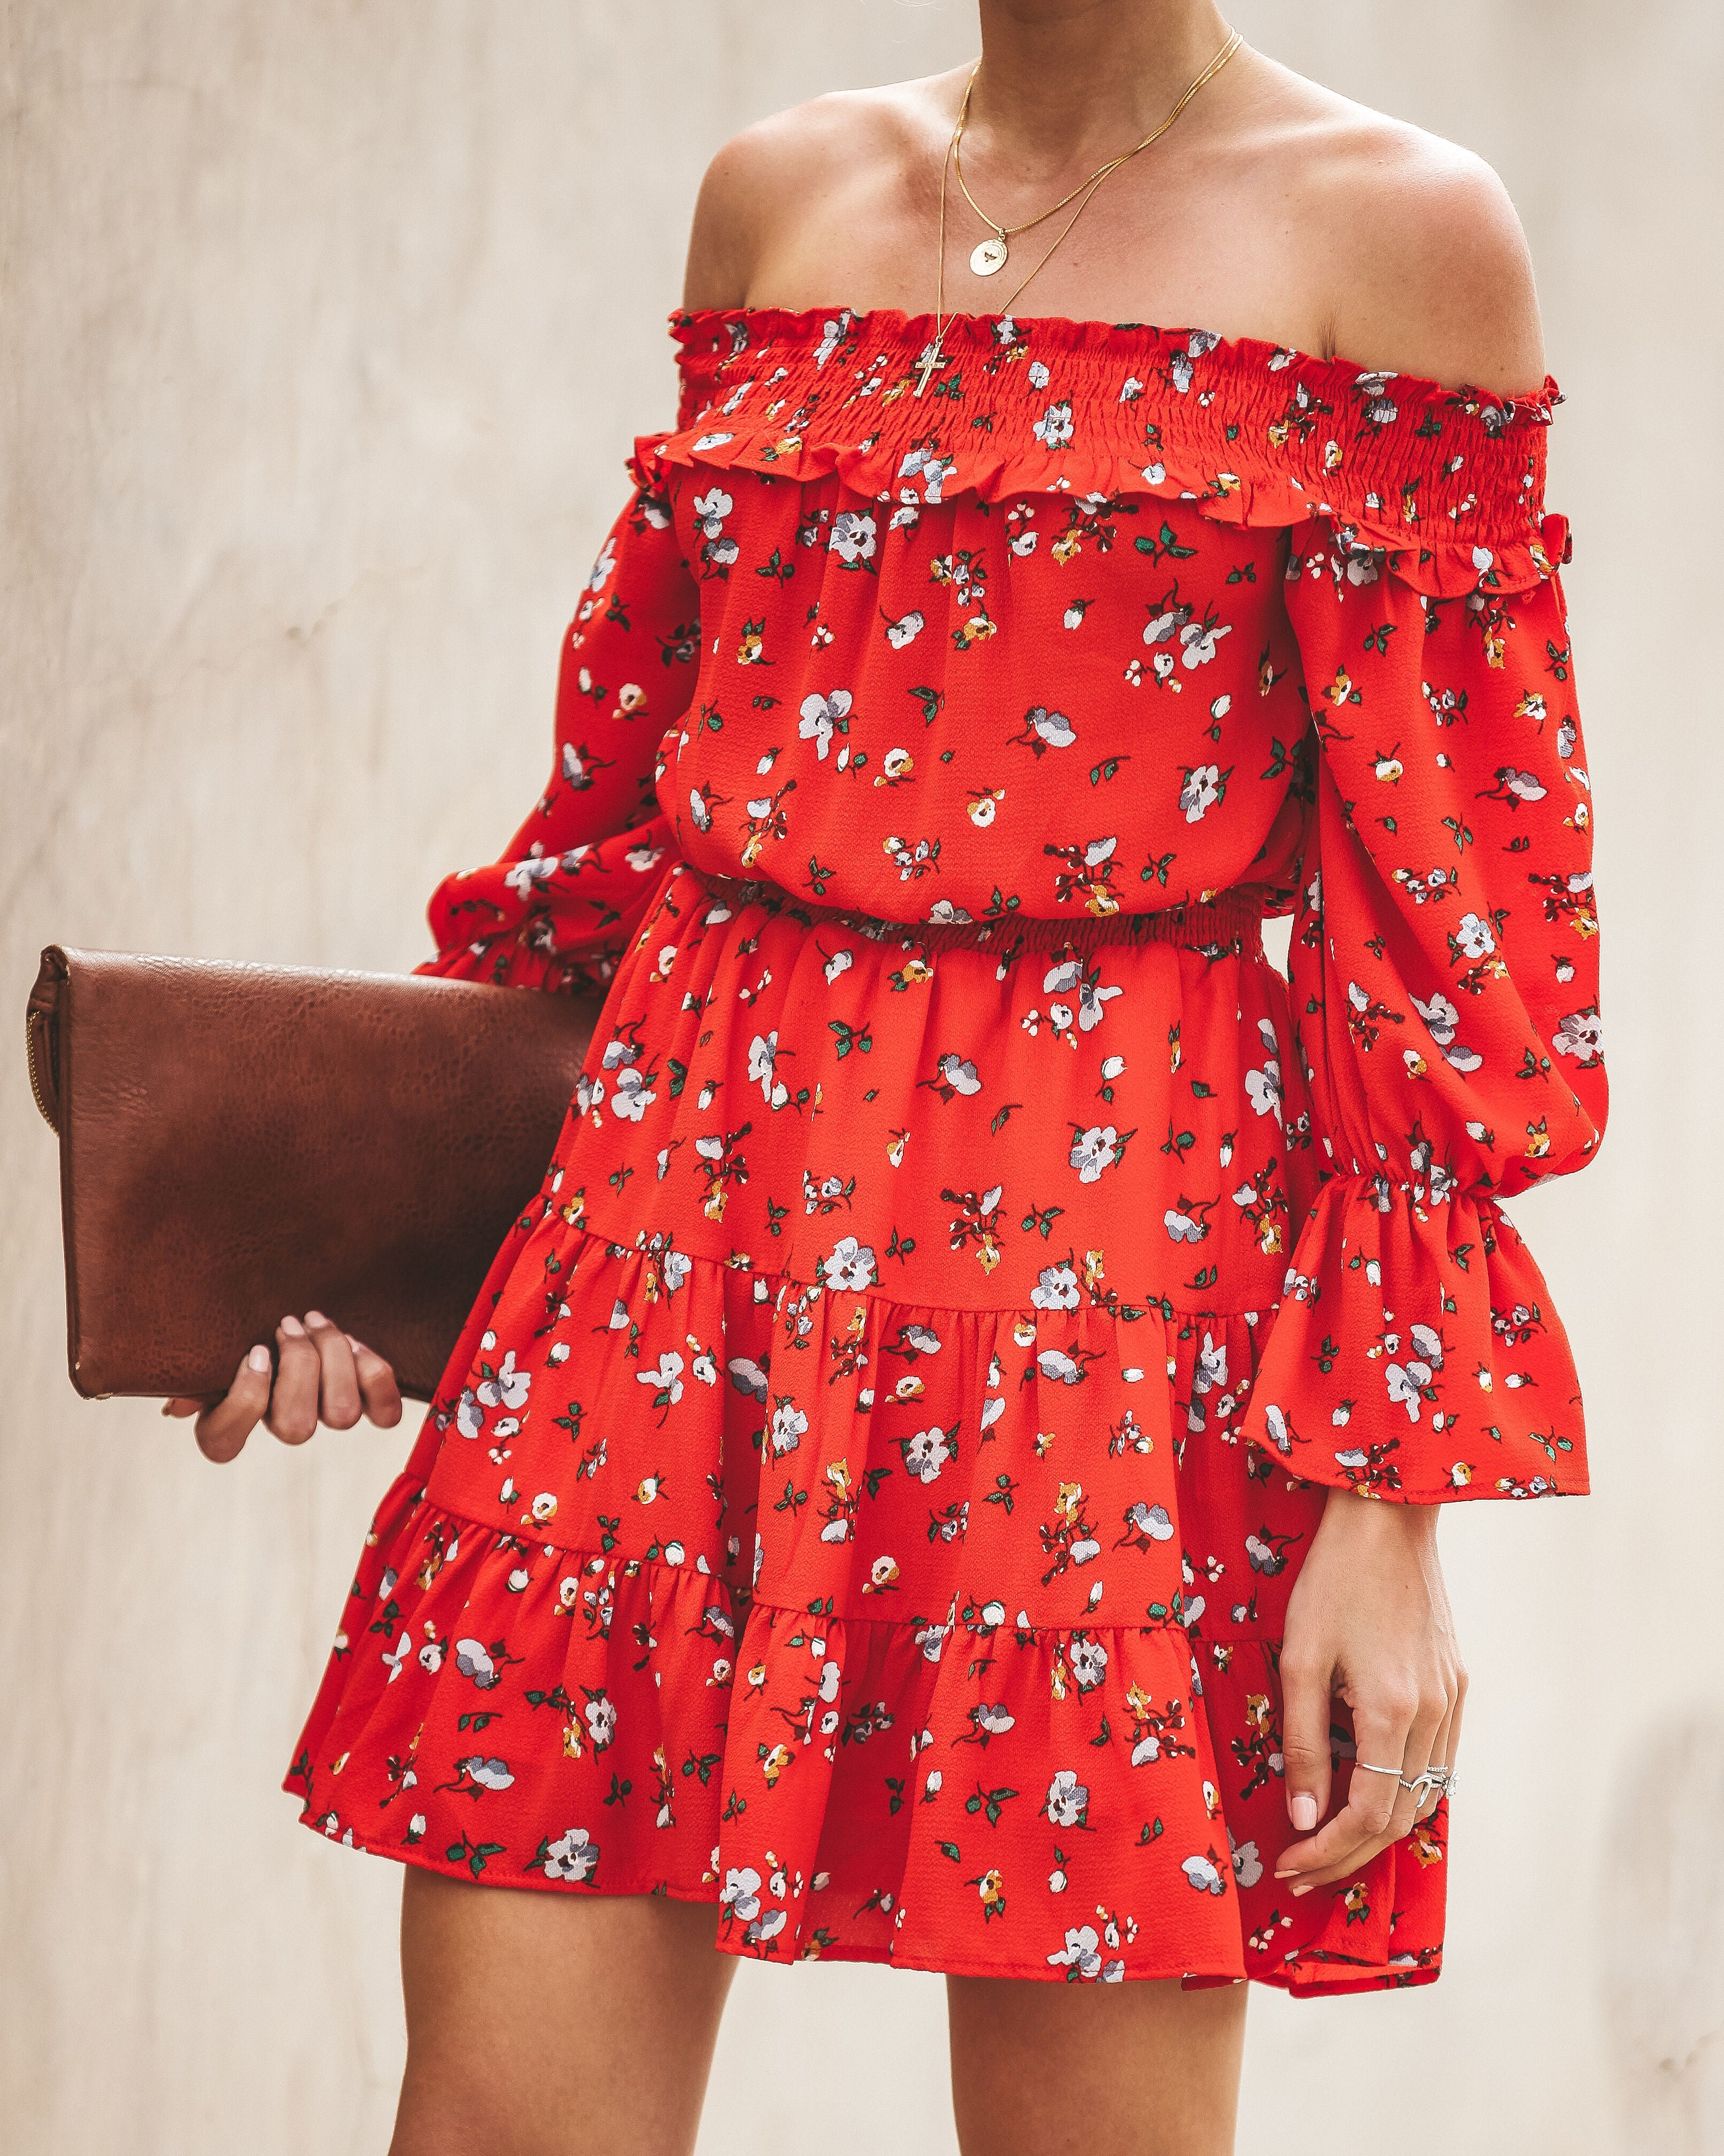 0ed60af17199 Detail Product. ← Home - DRESSES - Sound Of Music Floral Off The Shoulder  Dress - Tomato Red